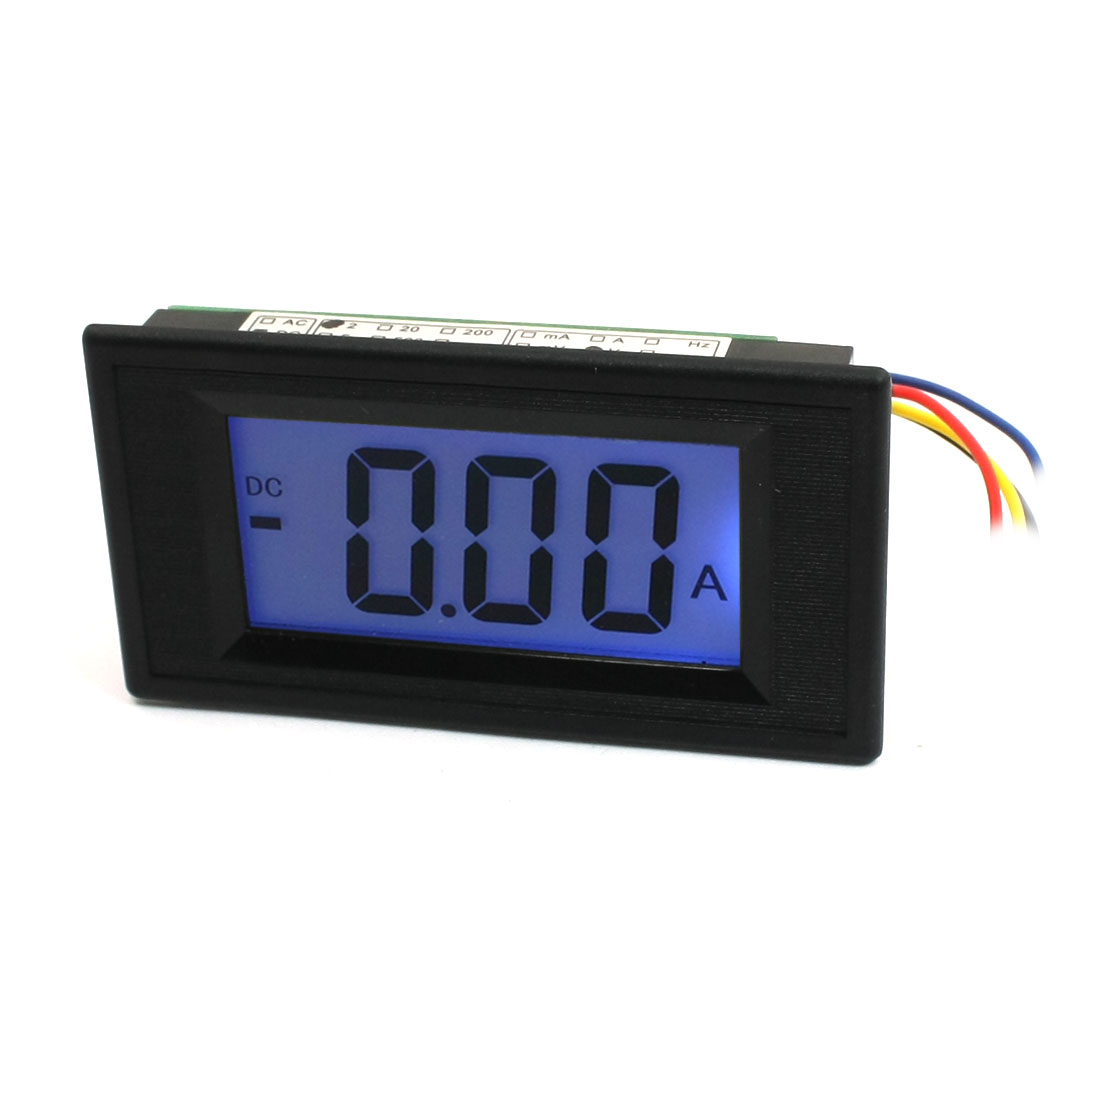 Blue-LCD-Display-3-Digits-DC-0-2V-Digital-Panel-Voltmeter